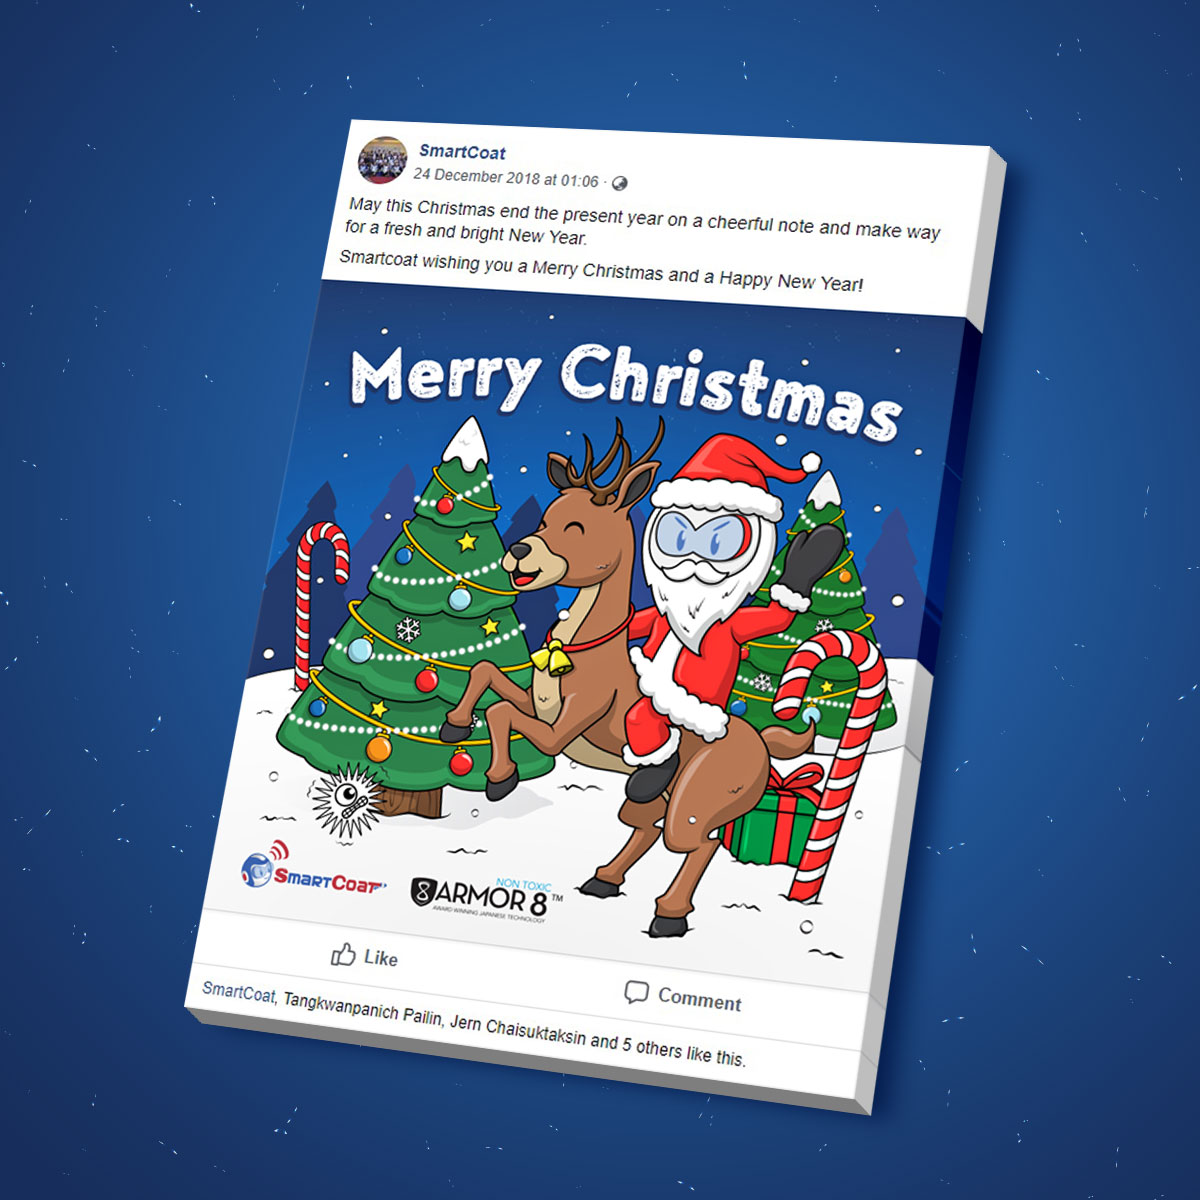 SmartCoat and Armor8 Merry Christmas 2018 Facebook Post Design 03